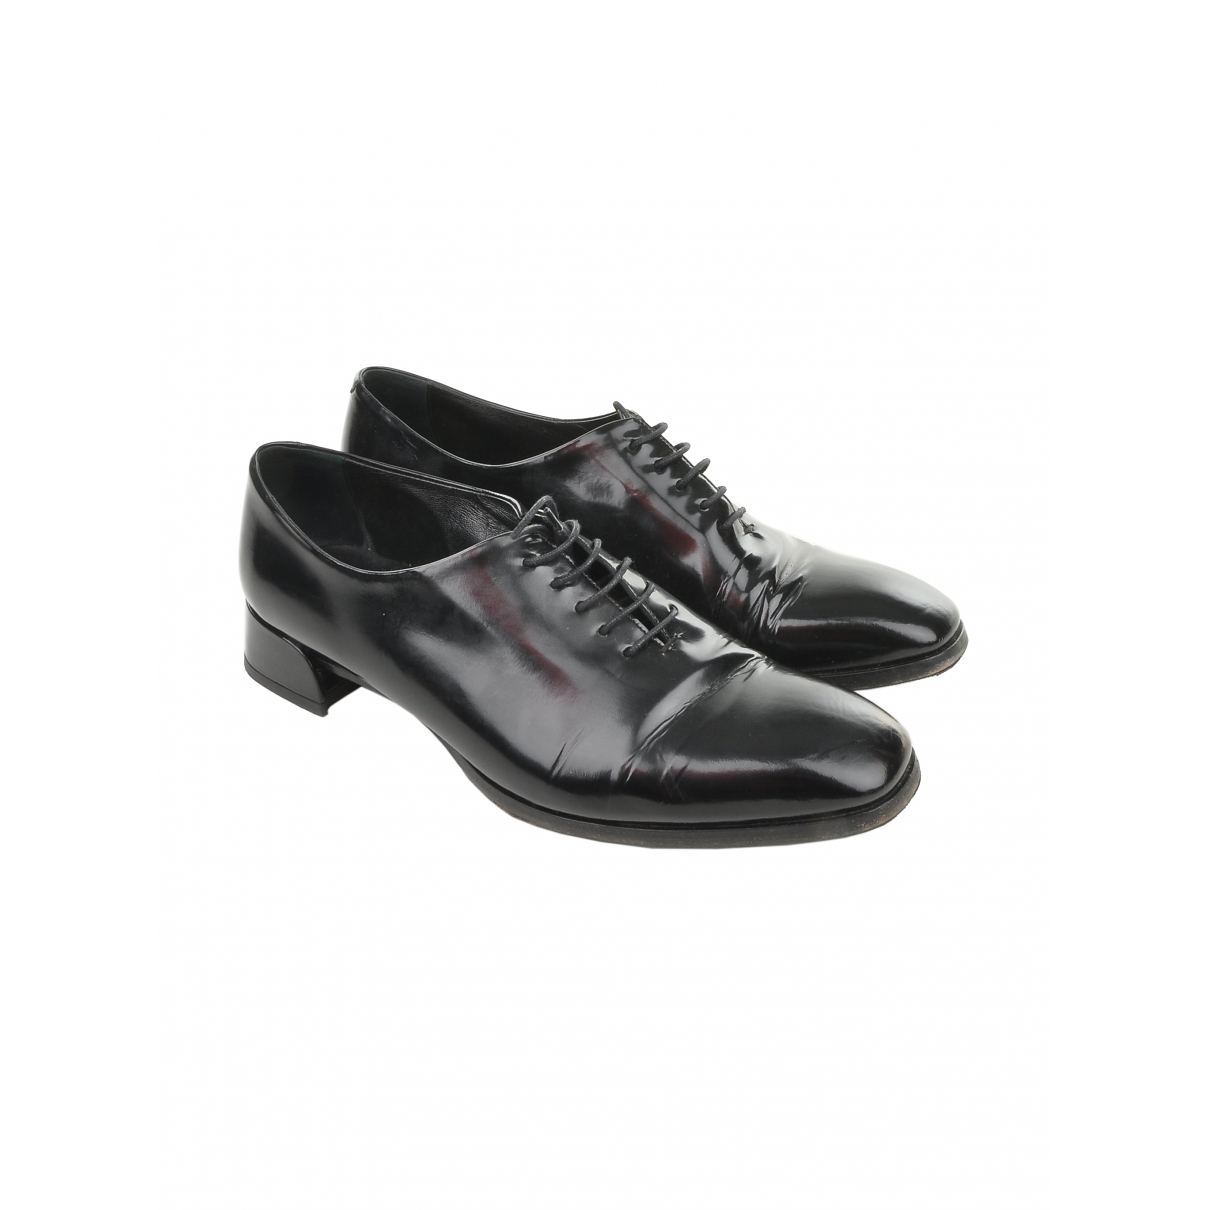 Dior \N Black Patent leather Lace ups for Women 38.5 IT